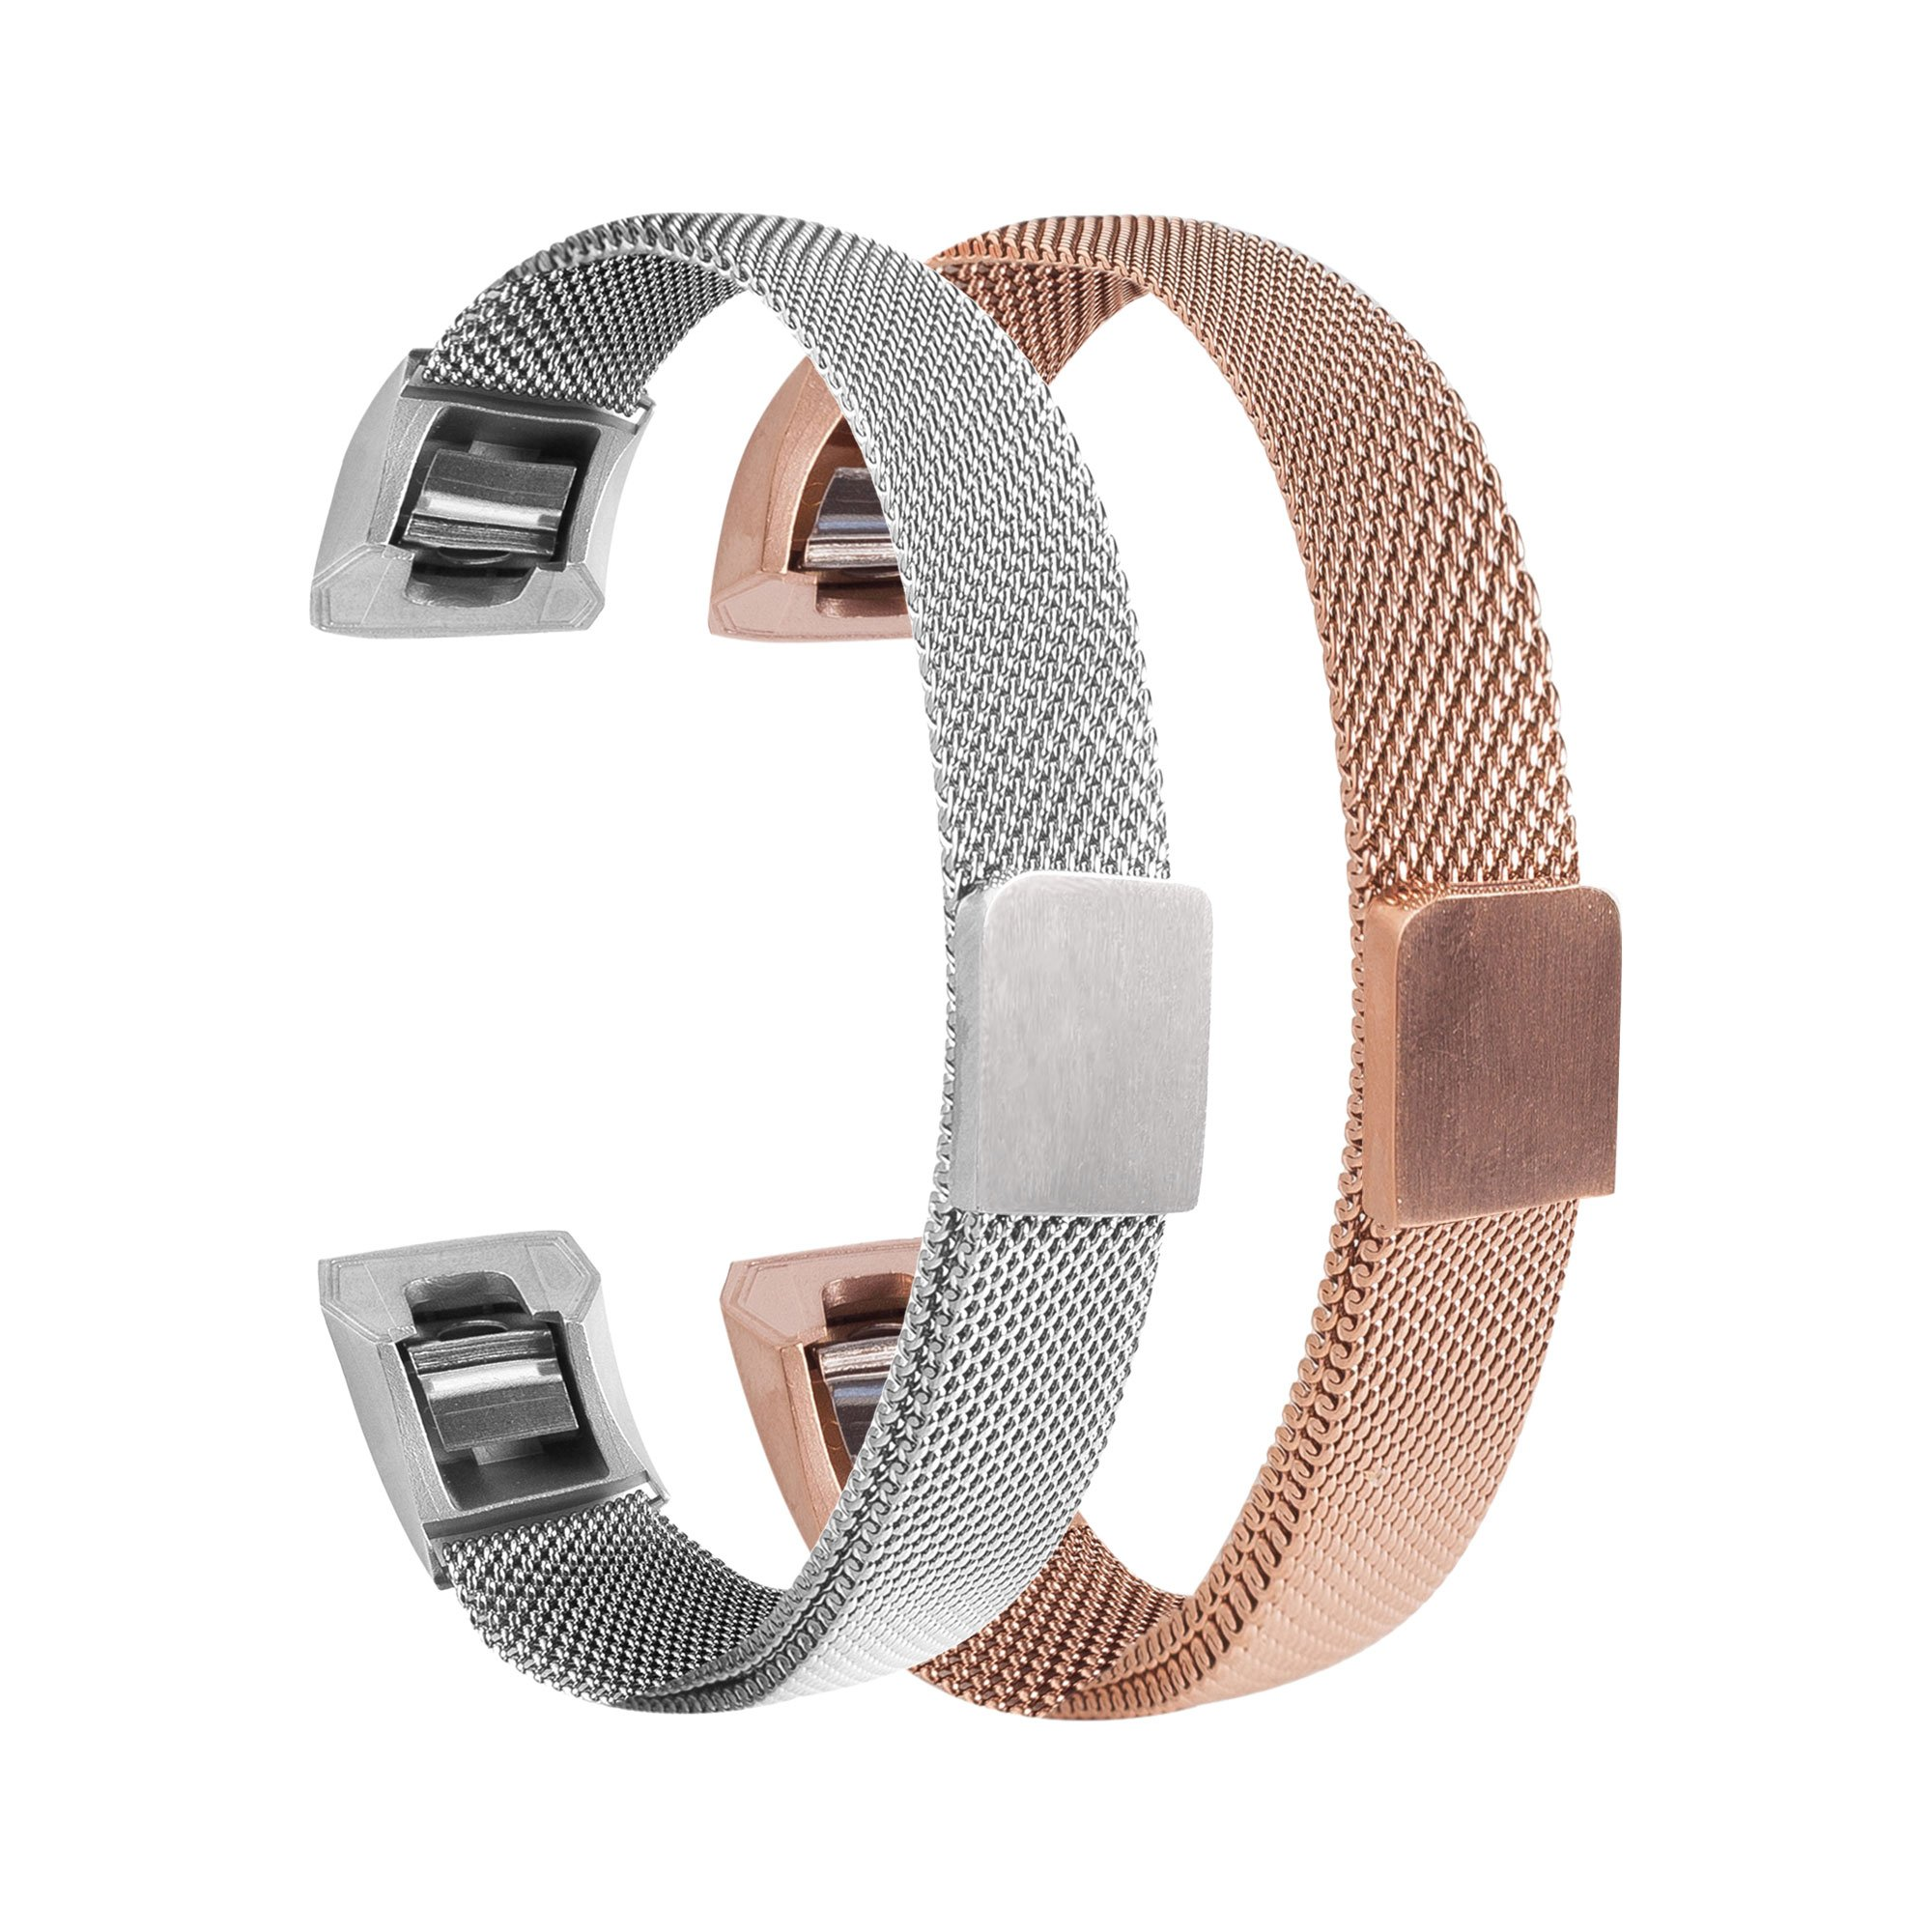 Bewish 2 Pcs Milanese Loop Stainless Steel Watch Band Bracelet for Fitbit Alta/Alta HR Magnet Clasp Lock Adjustable Replacement Watch Strap (S, Silver & Rose Gold)